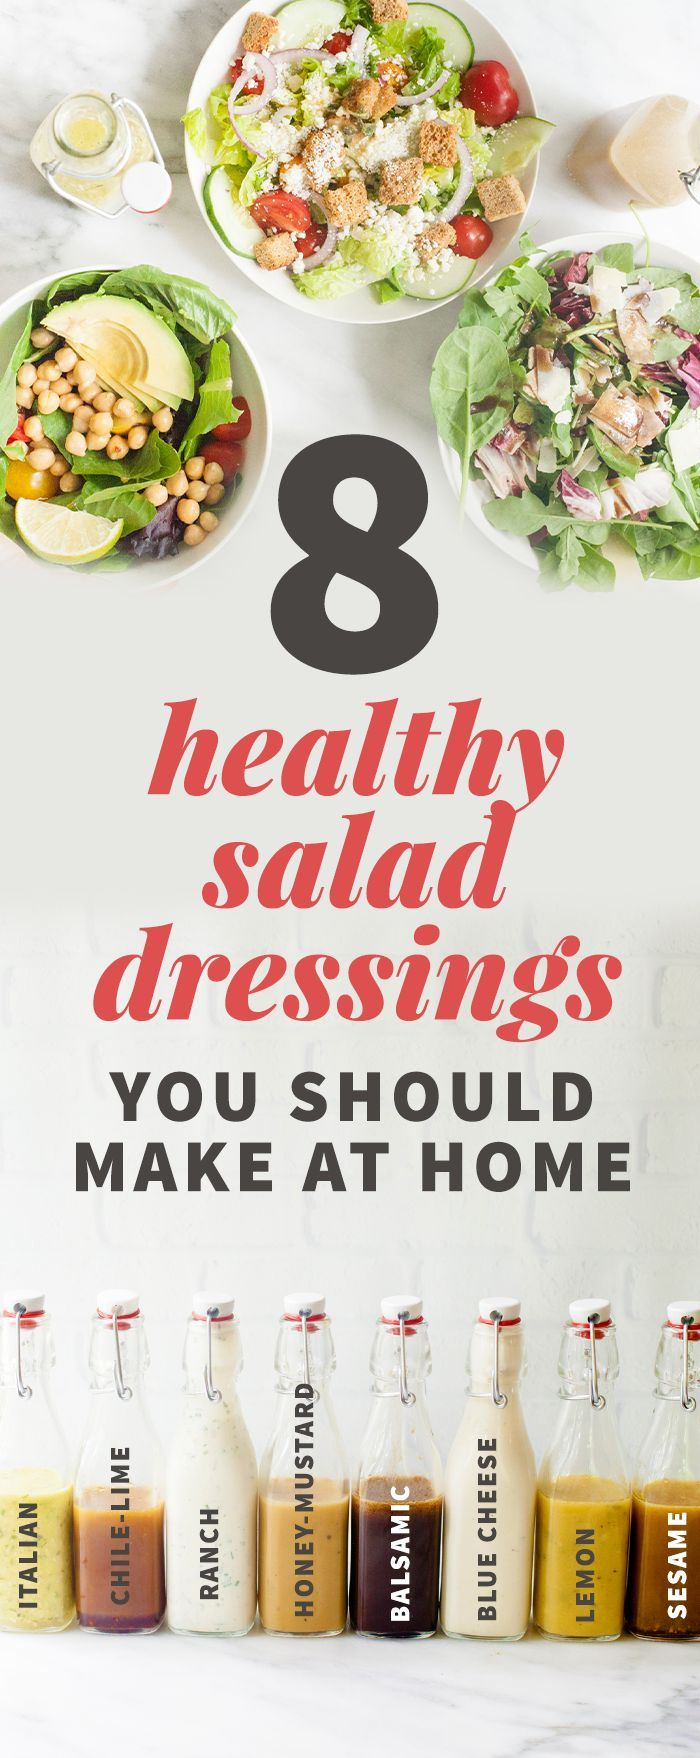 Clean eating recipes http://www.changeinseconds.com/top-100-clean-eating-recipes/